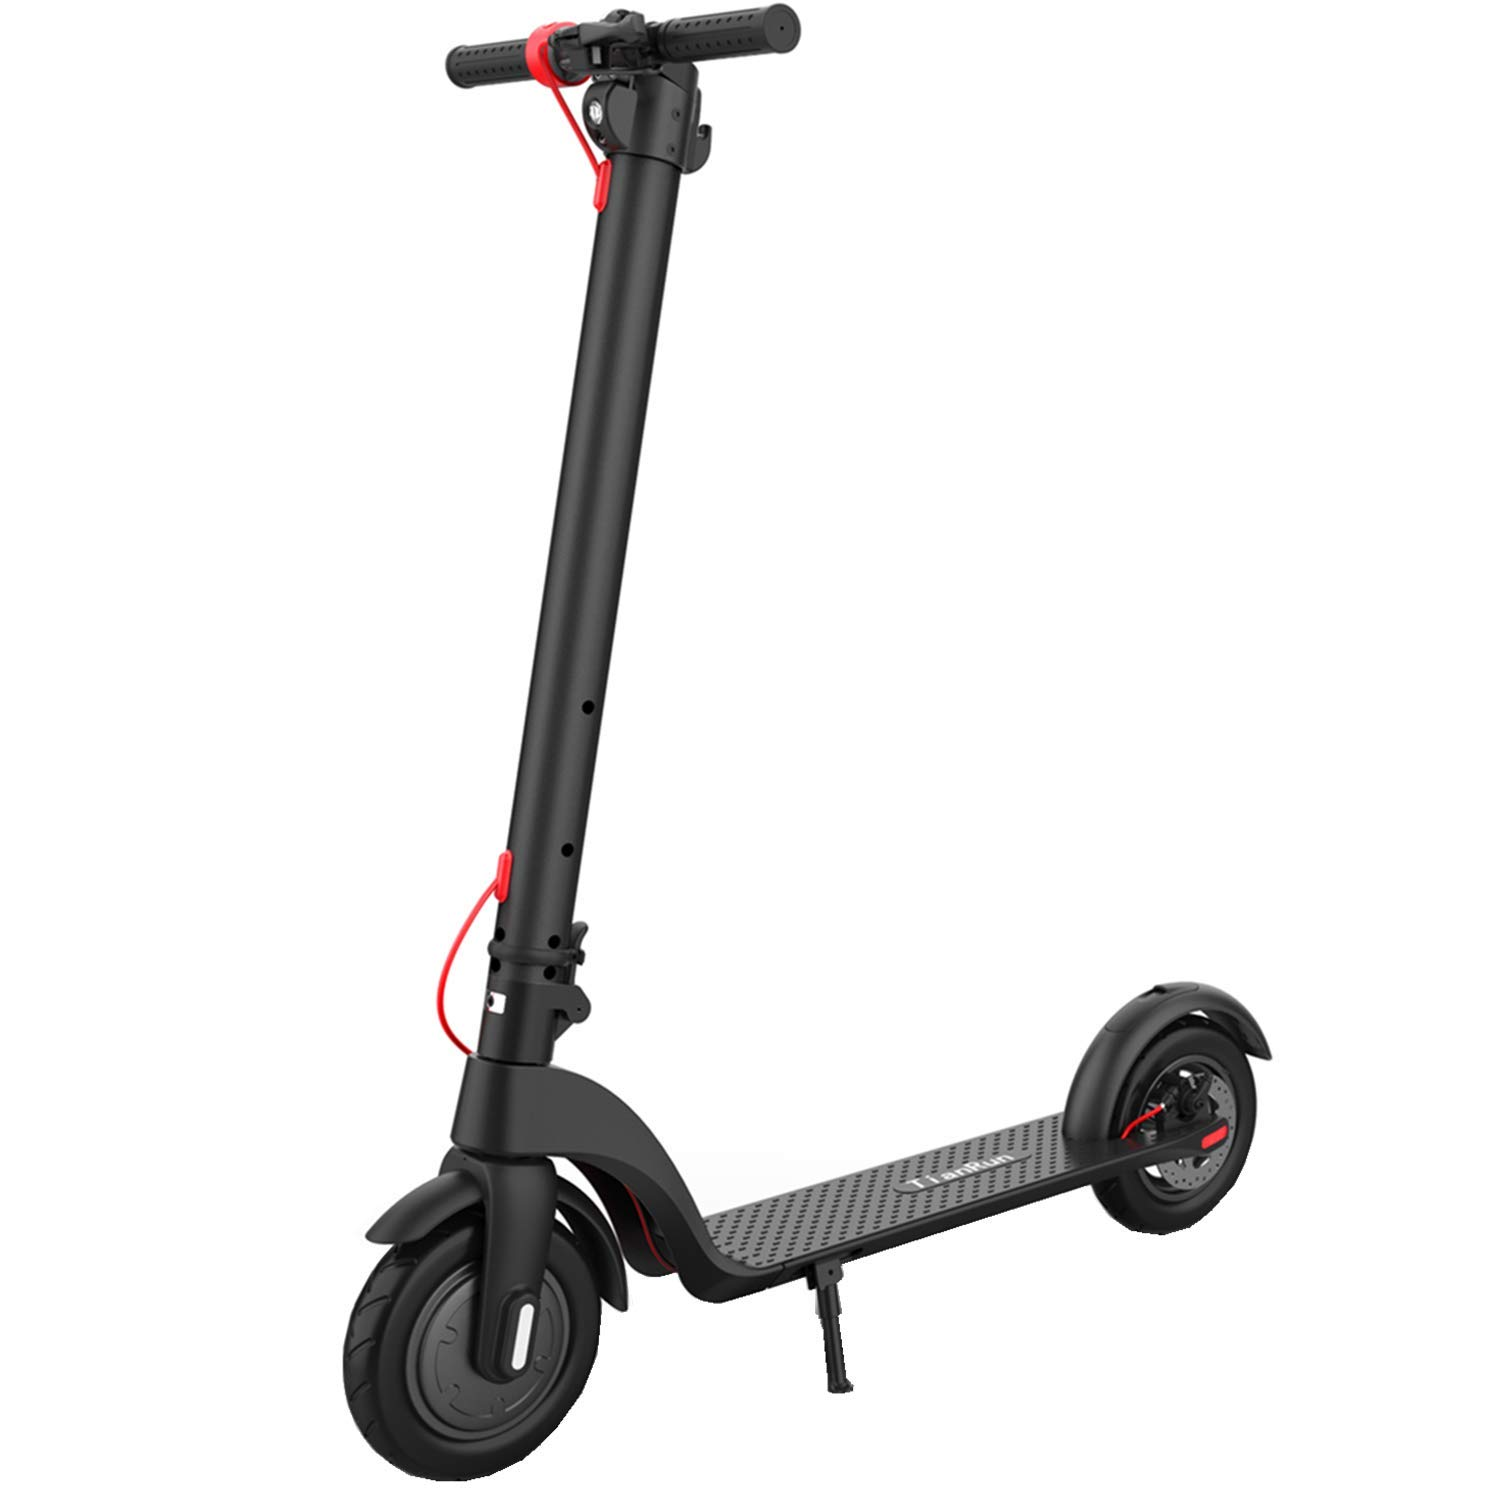 8.5 inch Pneumatic Air Tires Commuter E-Scooter Bicycle for Adult Teenage TRX7 TianRun Foldable 8.5 Electric Scooter,Detachable Battery,20-25km//h,13-16Km Ranges,IP54,Max Load120kg,LCD Display